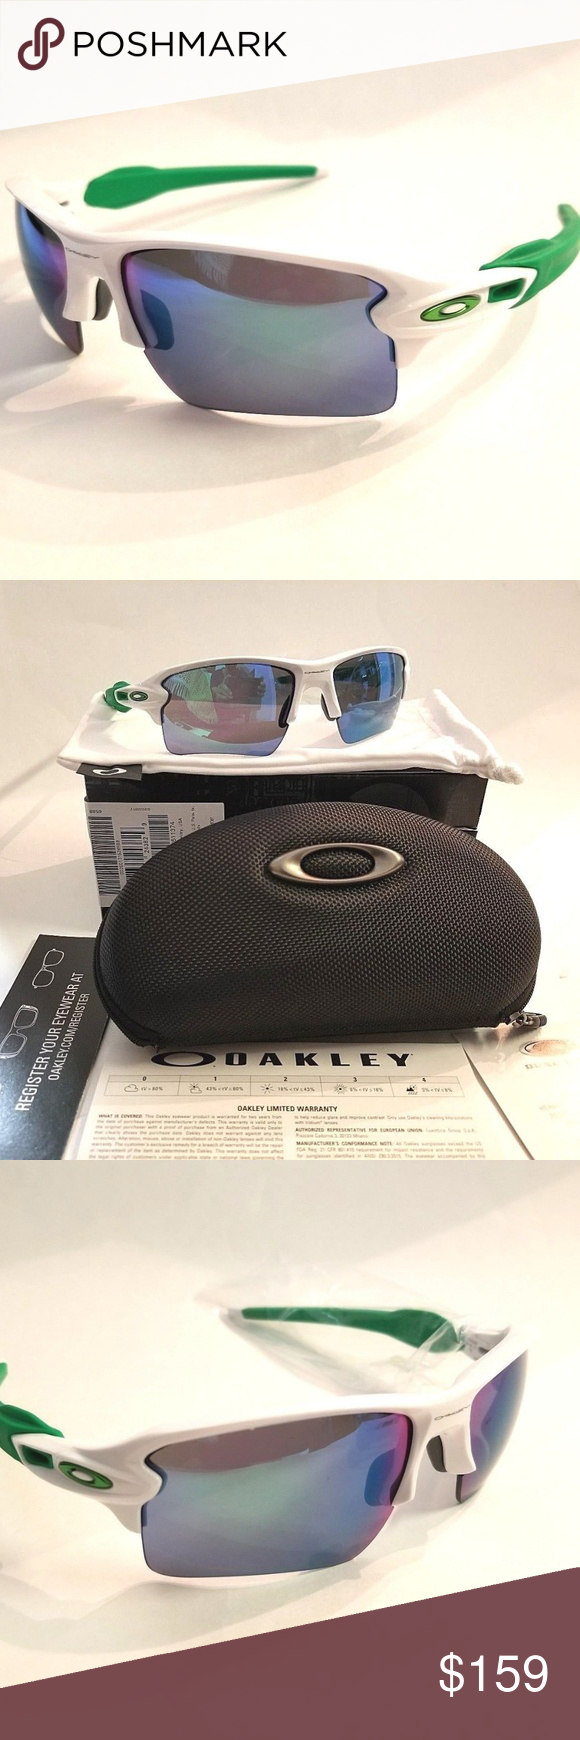 63ded076eb Oakley Flak 2.0 XL White Jade Iridium Lens The famous Jade Iridium and HDO  technology in one pair! This one has green and white polished frame Brand  new.